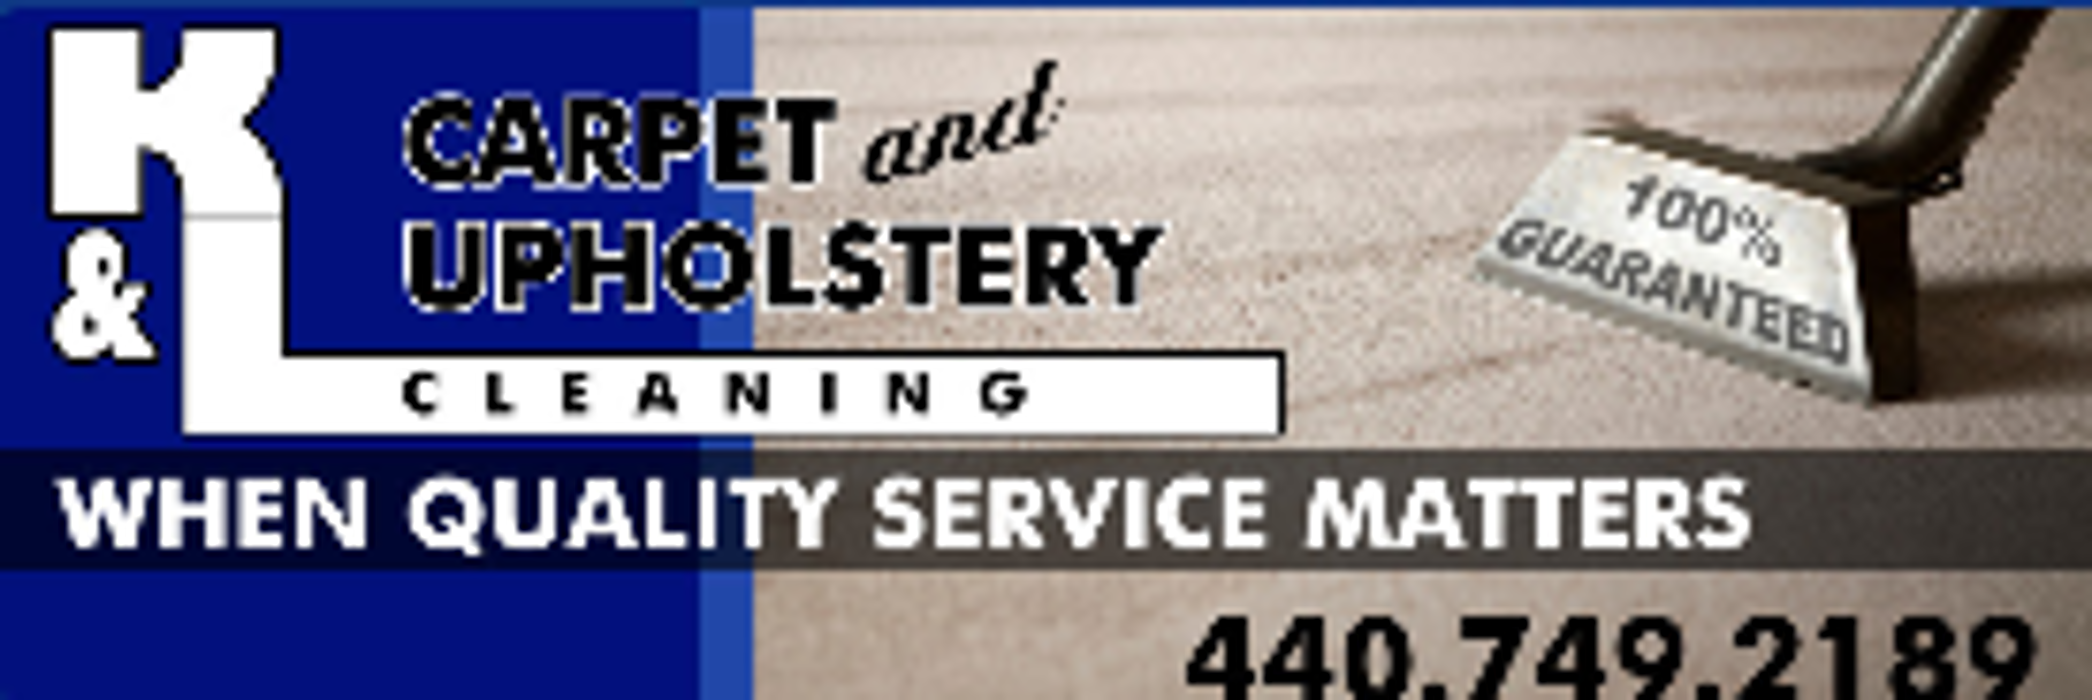 K & L Carpet and Upholstery Cleaning - Cleveland, OH